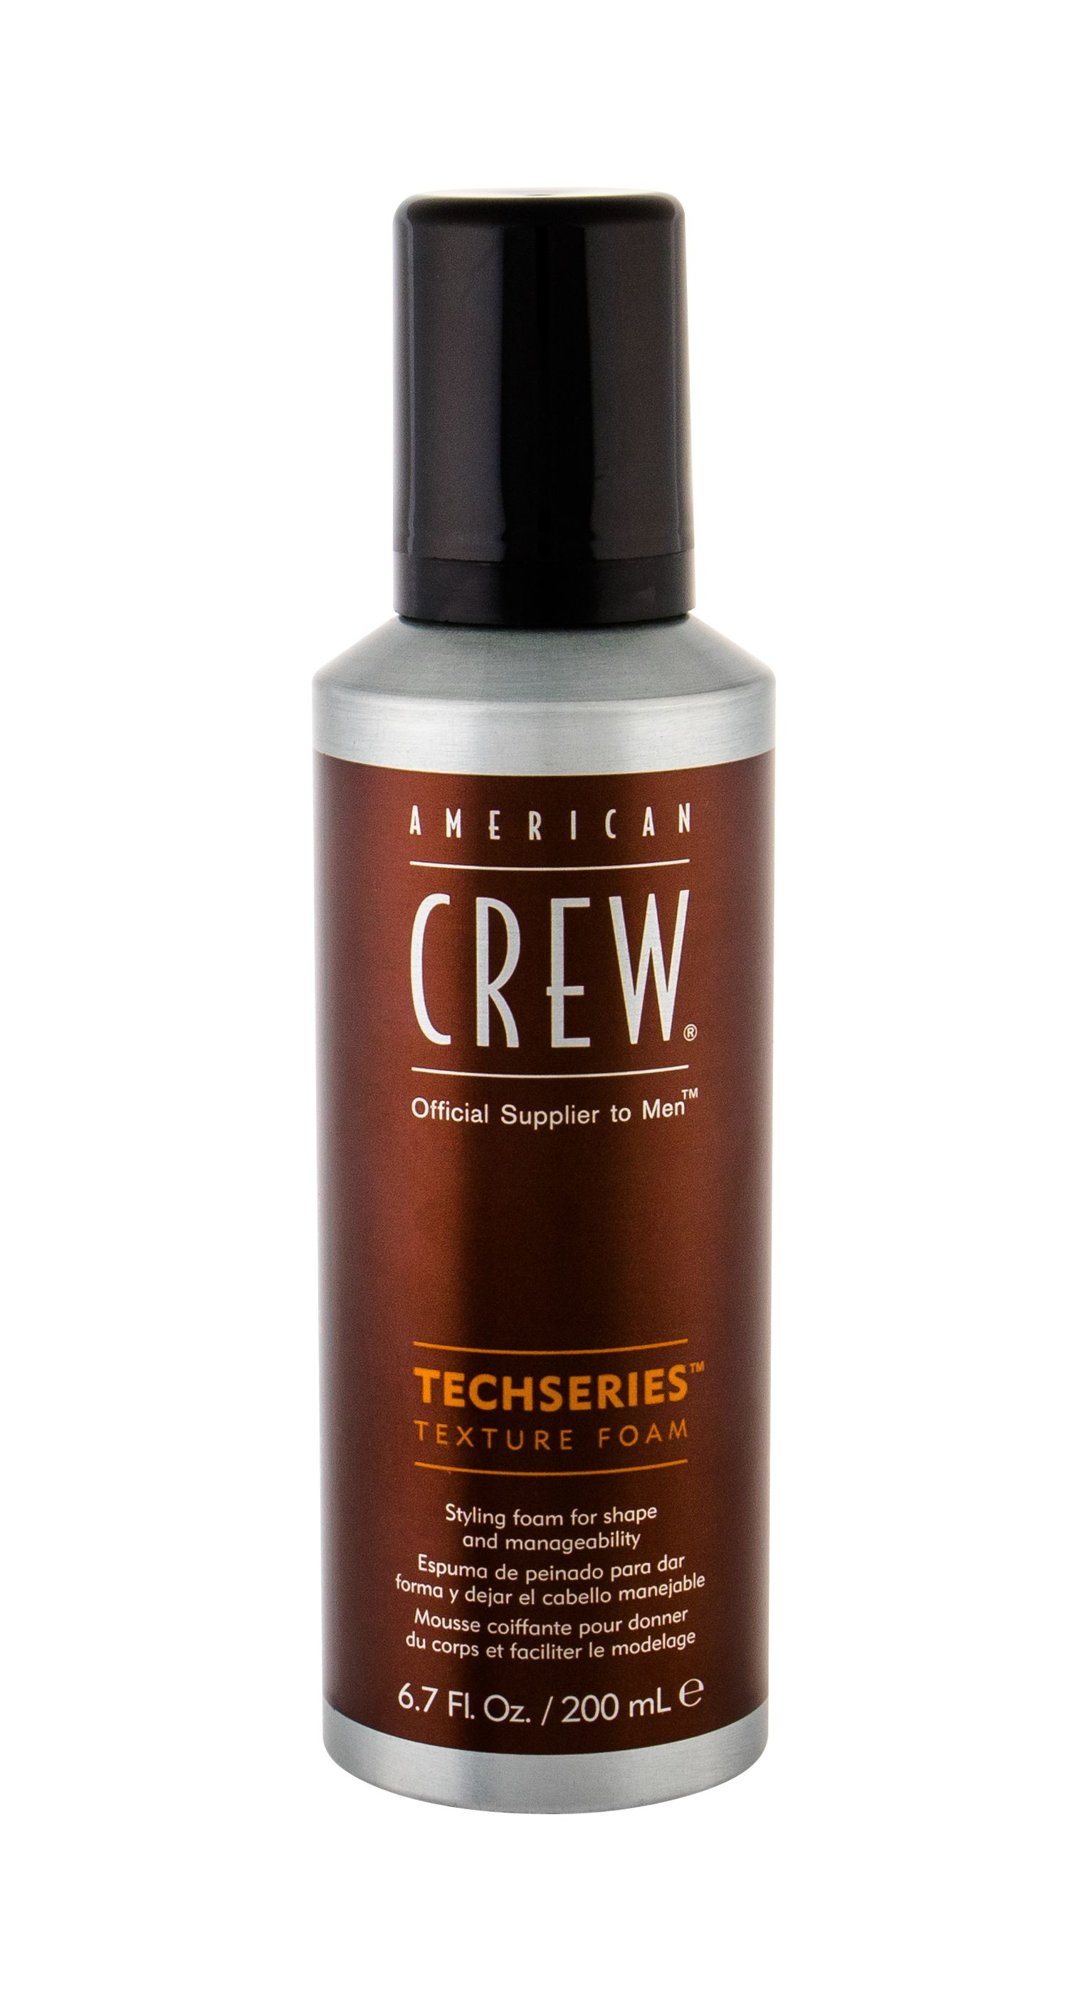 American Crew Techseries For Definition and Hair Styling 200ml  Texture Foam